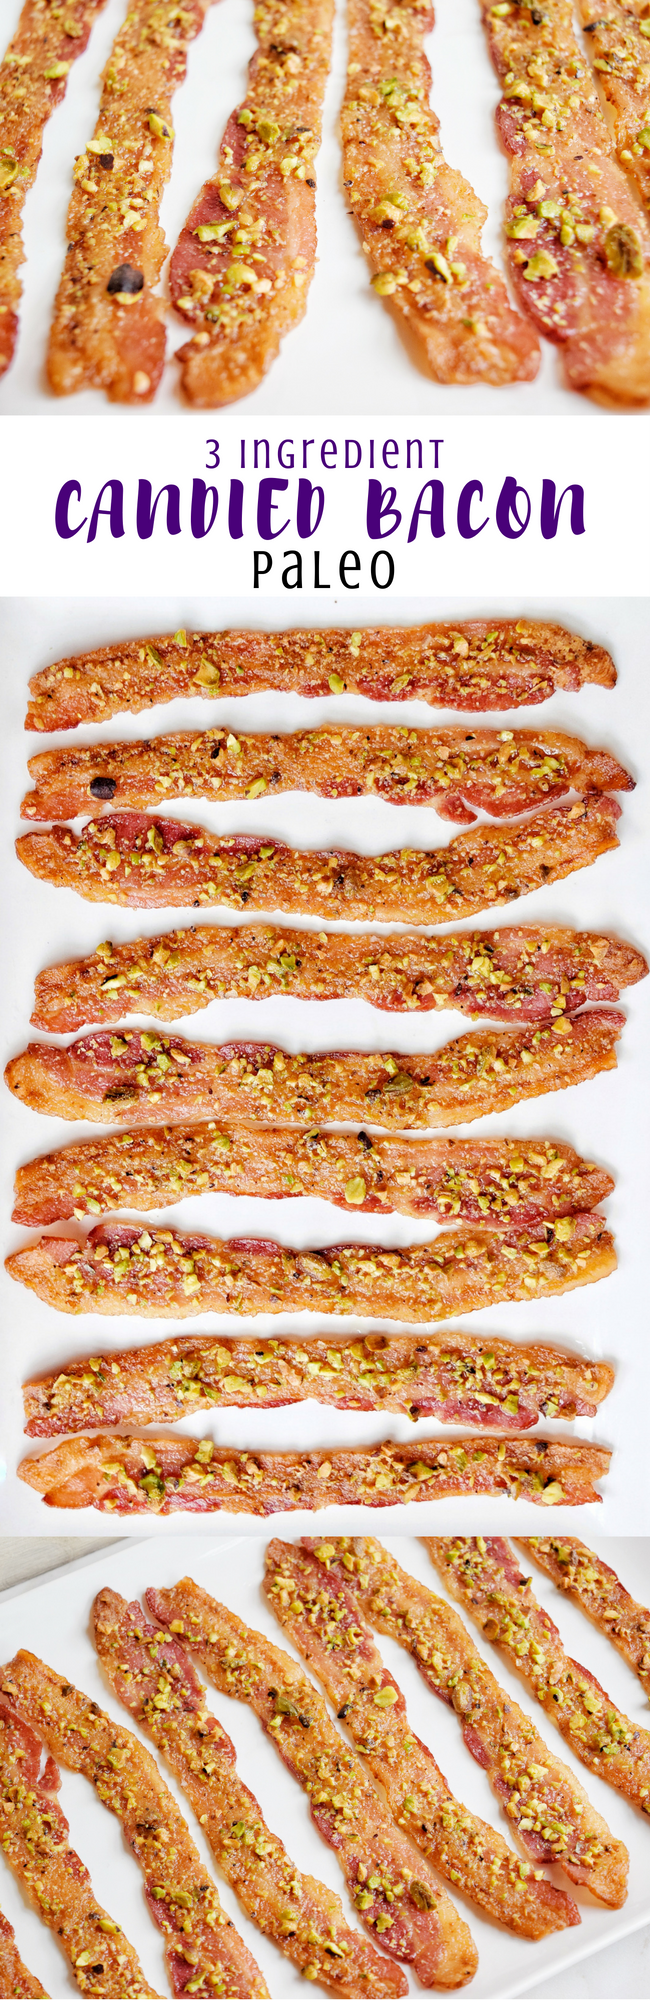 Paleo Candied Bacon | Personally Paleo